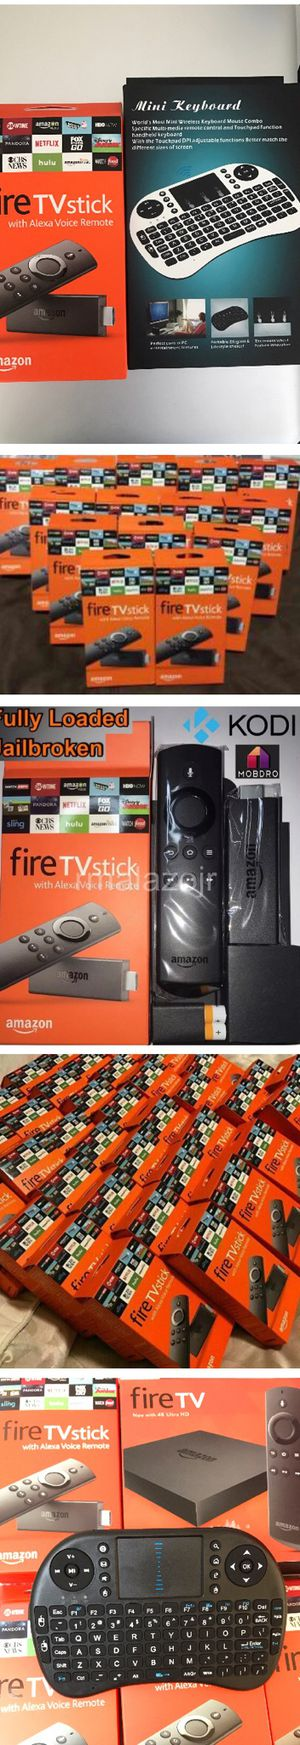 New Amazon fire tv stick firestick fully programmed with Live TV Movies and KODI 17.6 everything FREE! Android TV Box Killer! for Sale in Las Vegas, NV